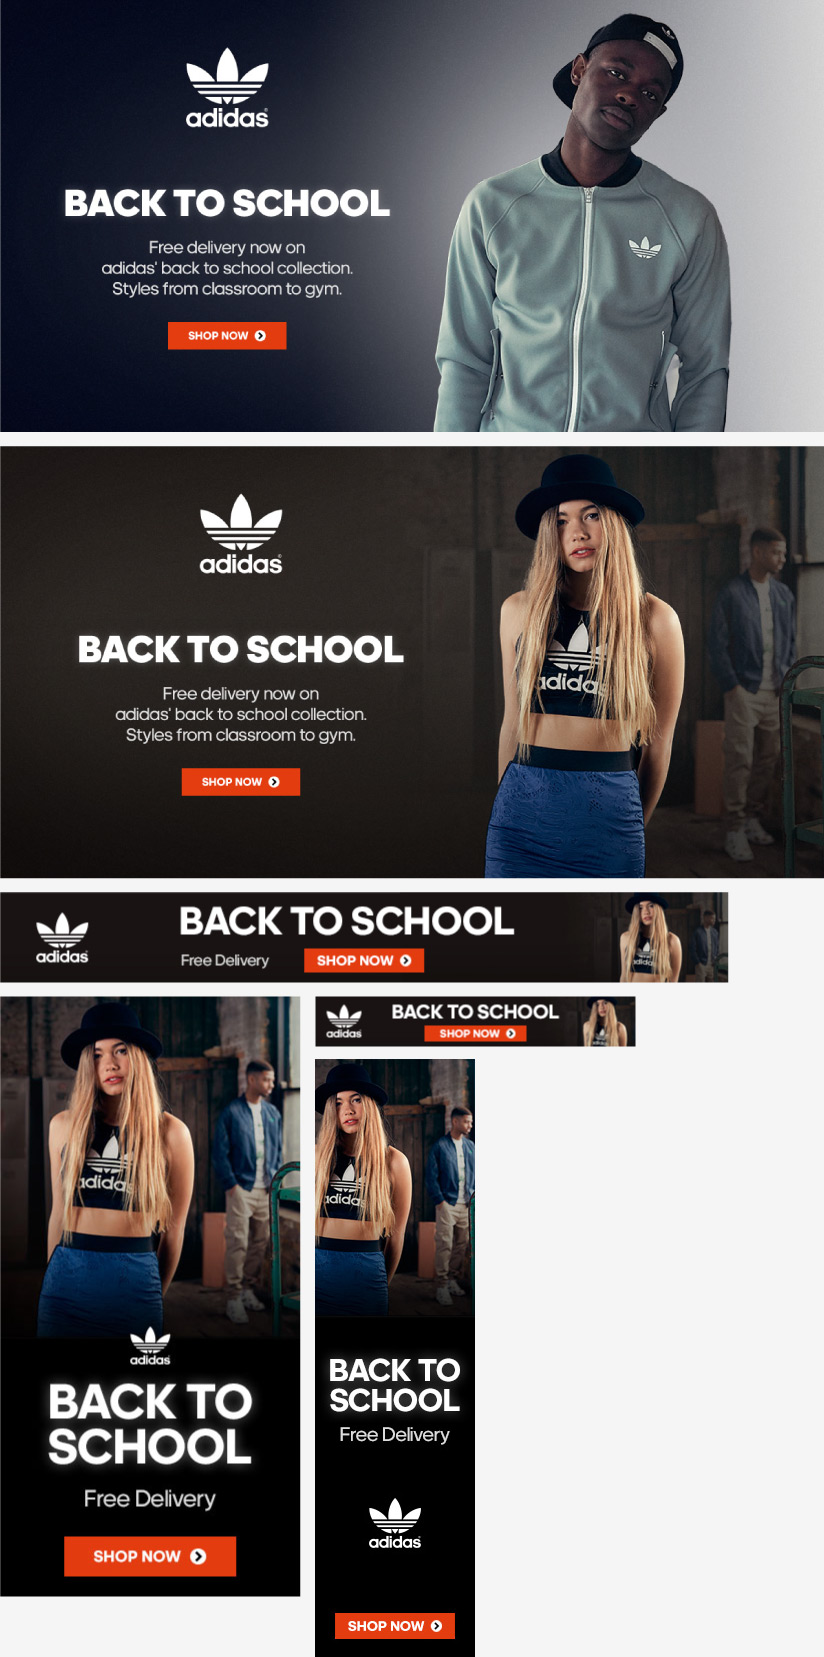 Adidas /  Back to School image 2